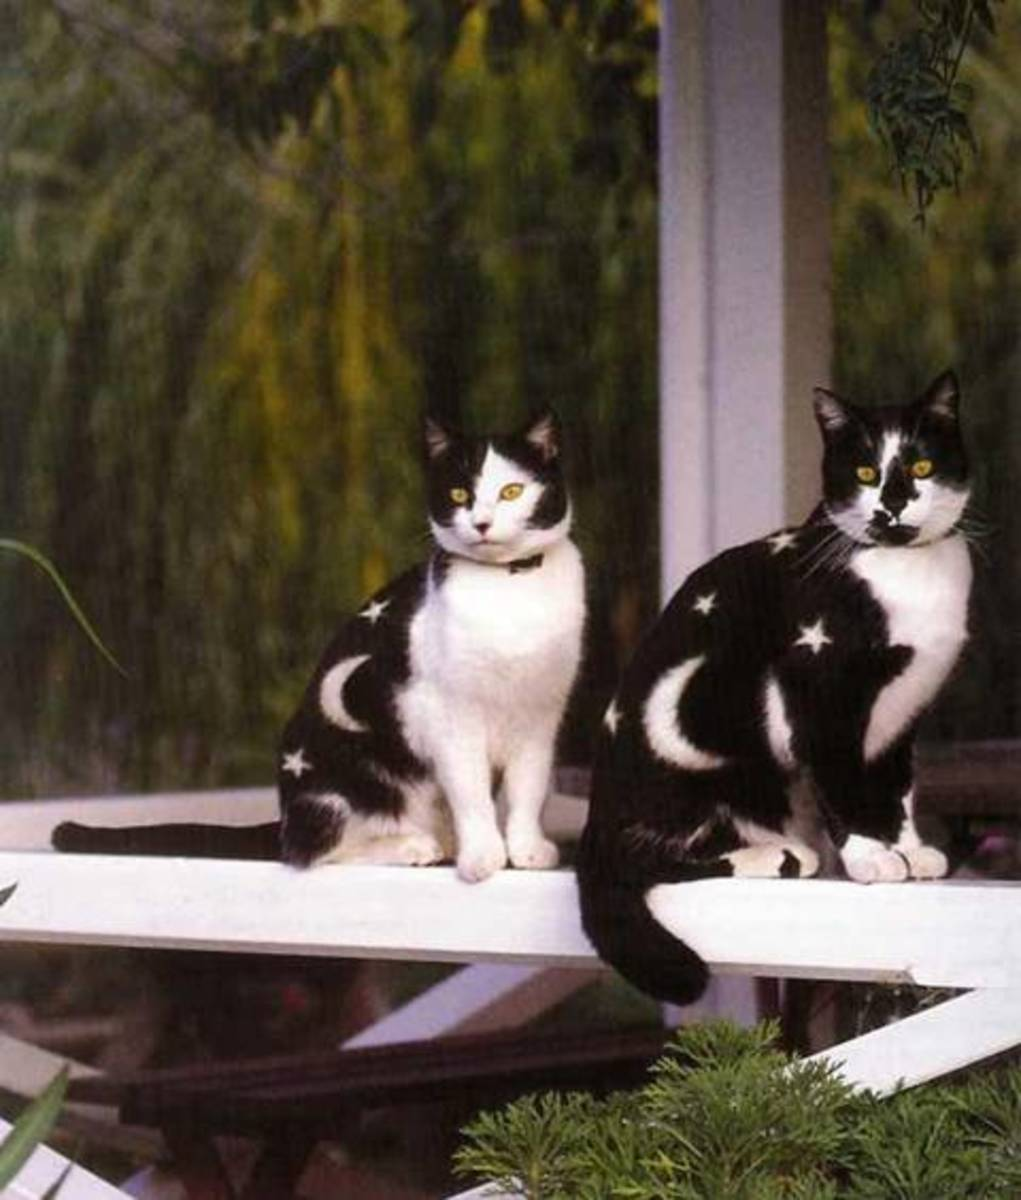 'Well I suppose we look better than the other's!' Cats.